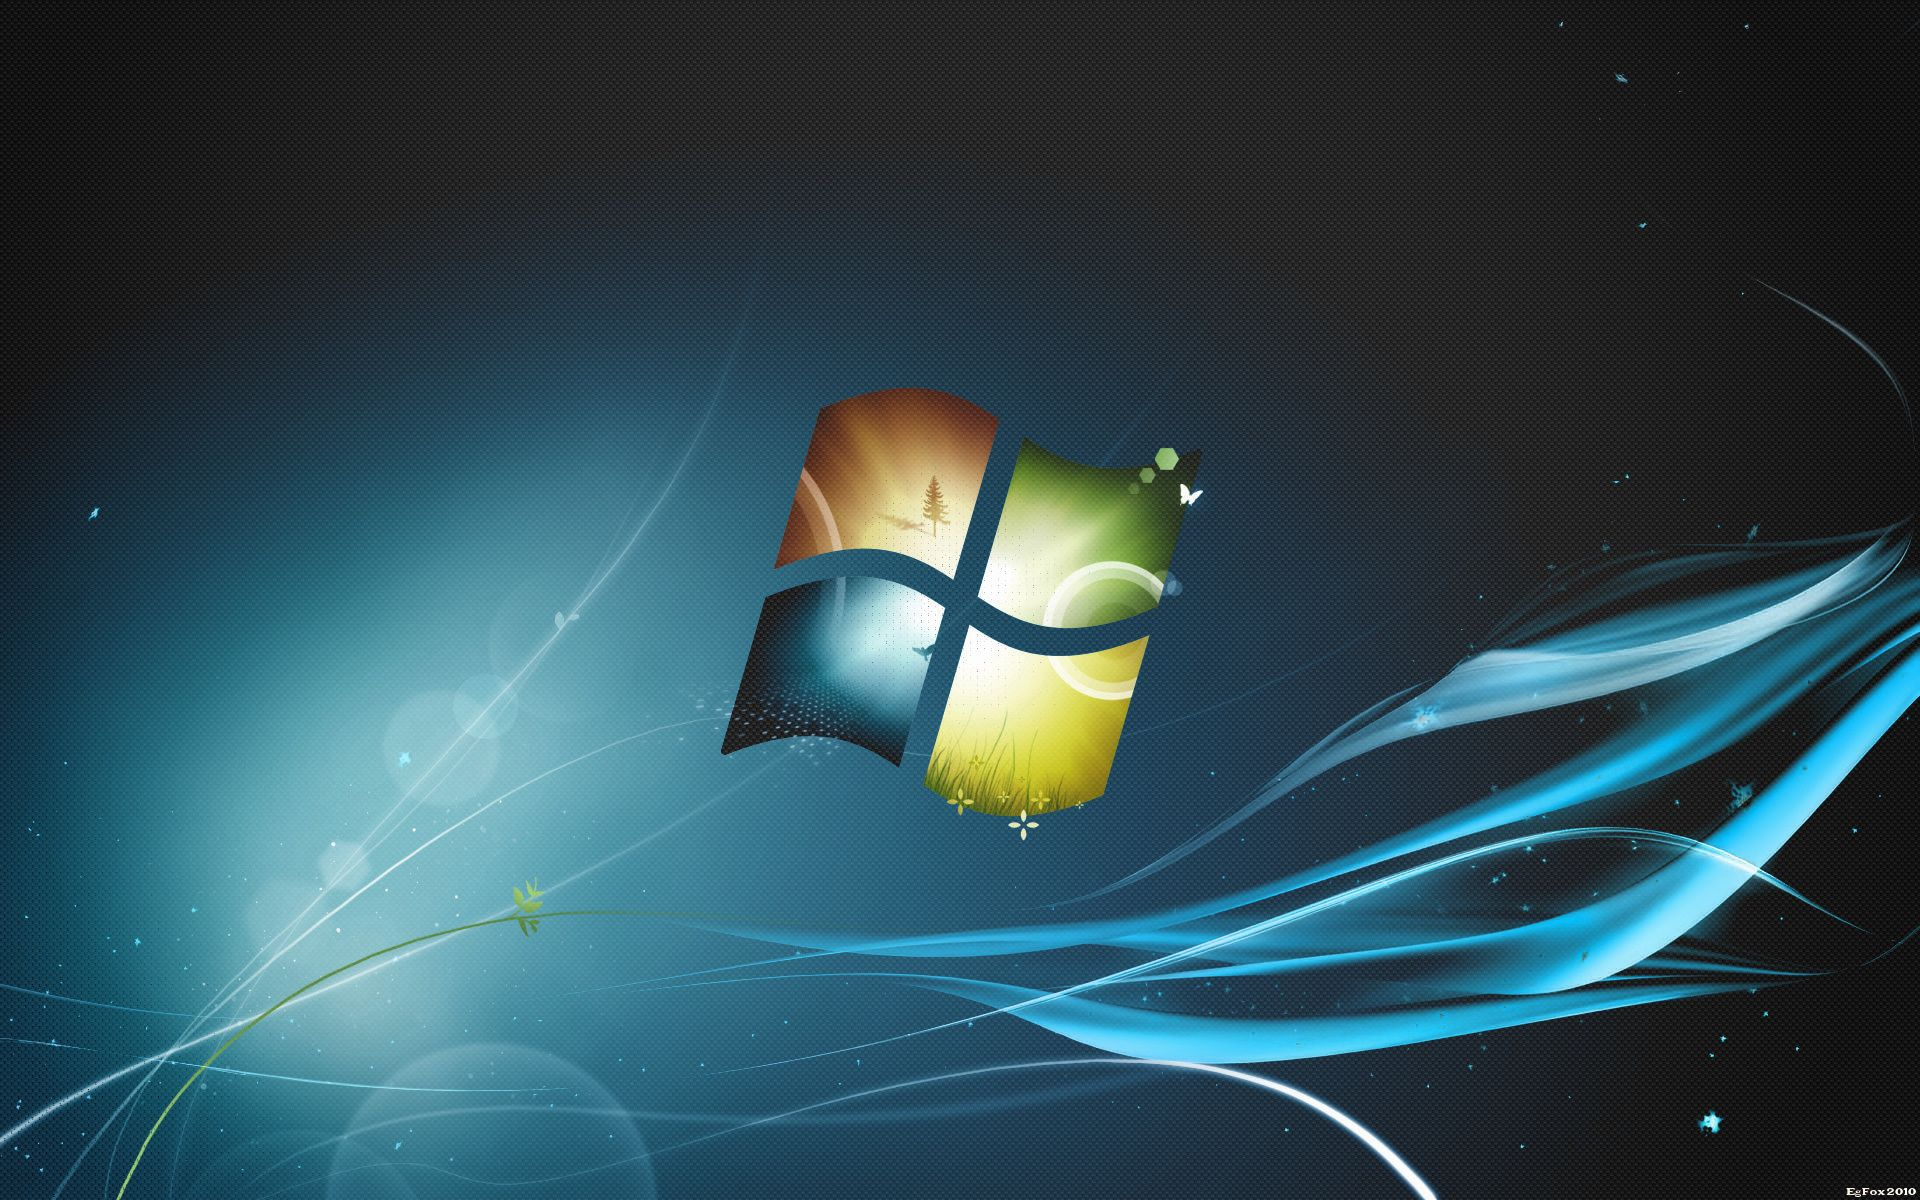 Sick windows wallpaper